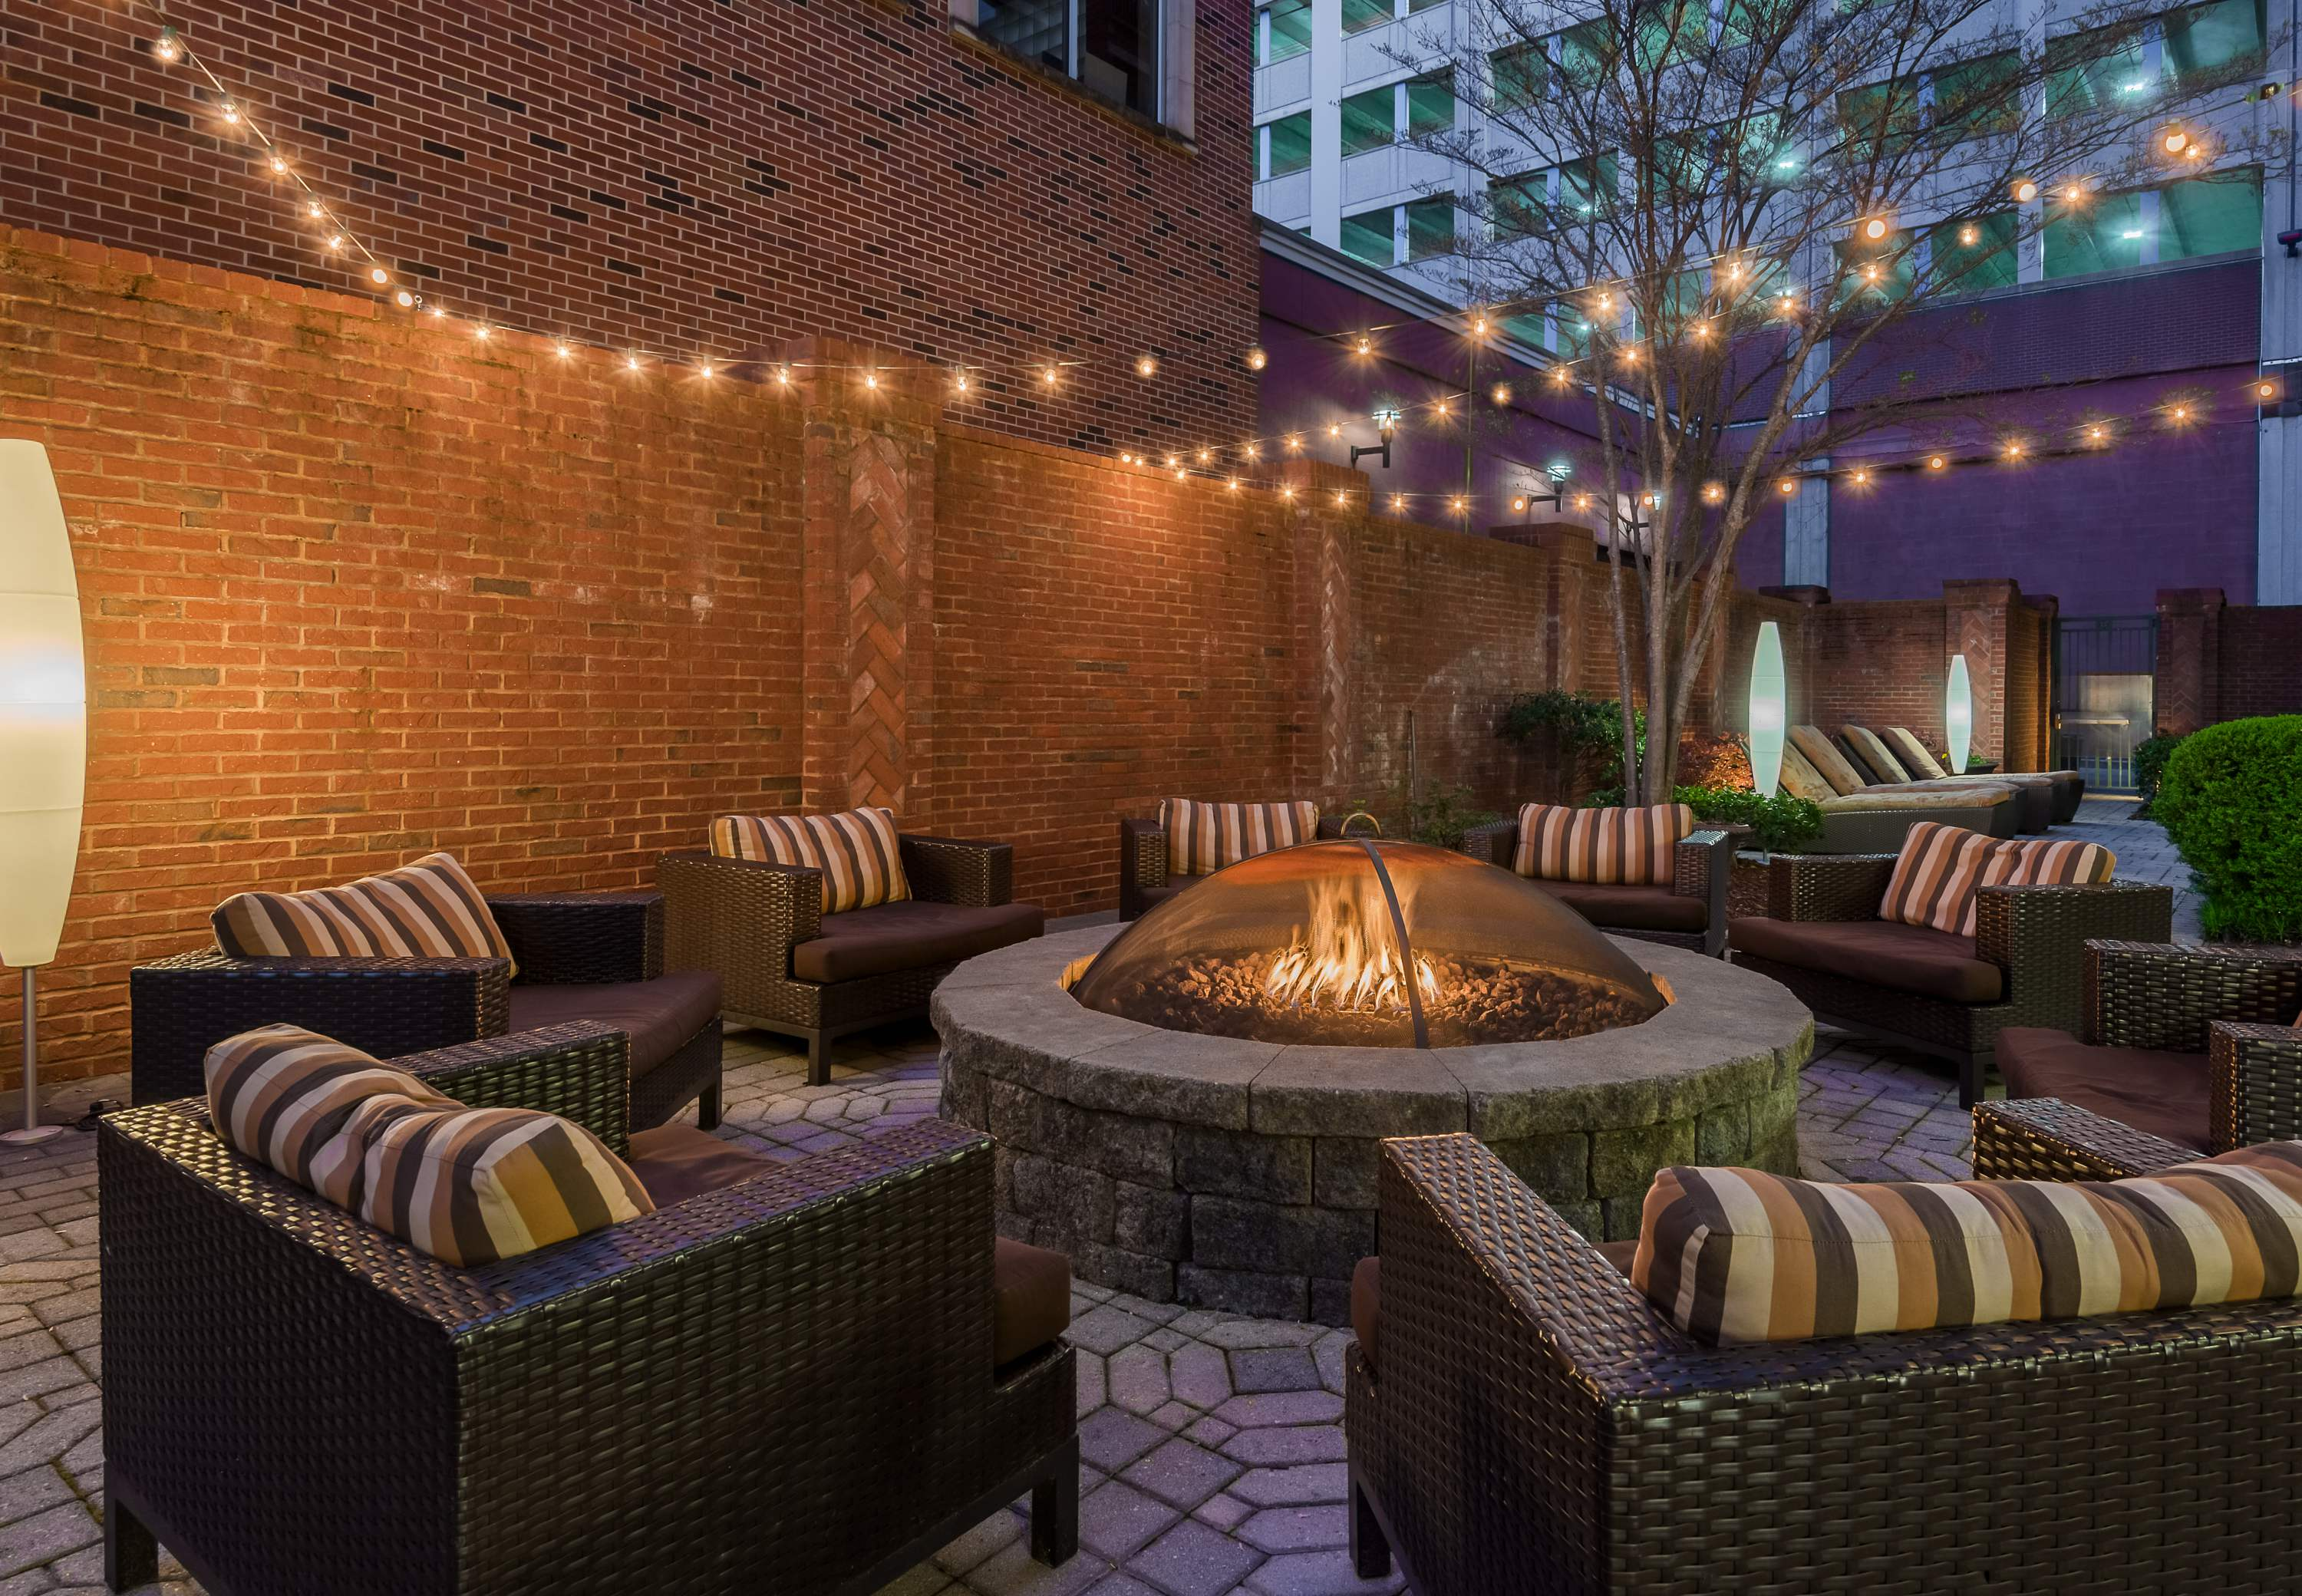 Courtyard By Marriott Chattanooga Downtown Chattanooga Tennessee Tn